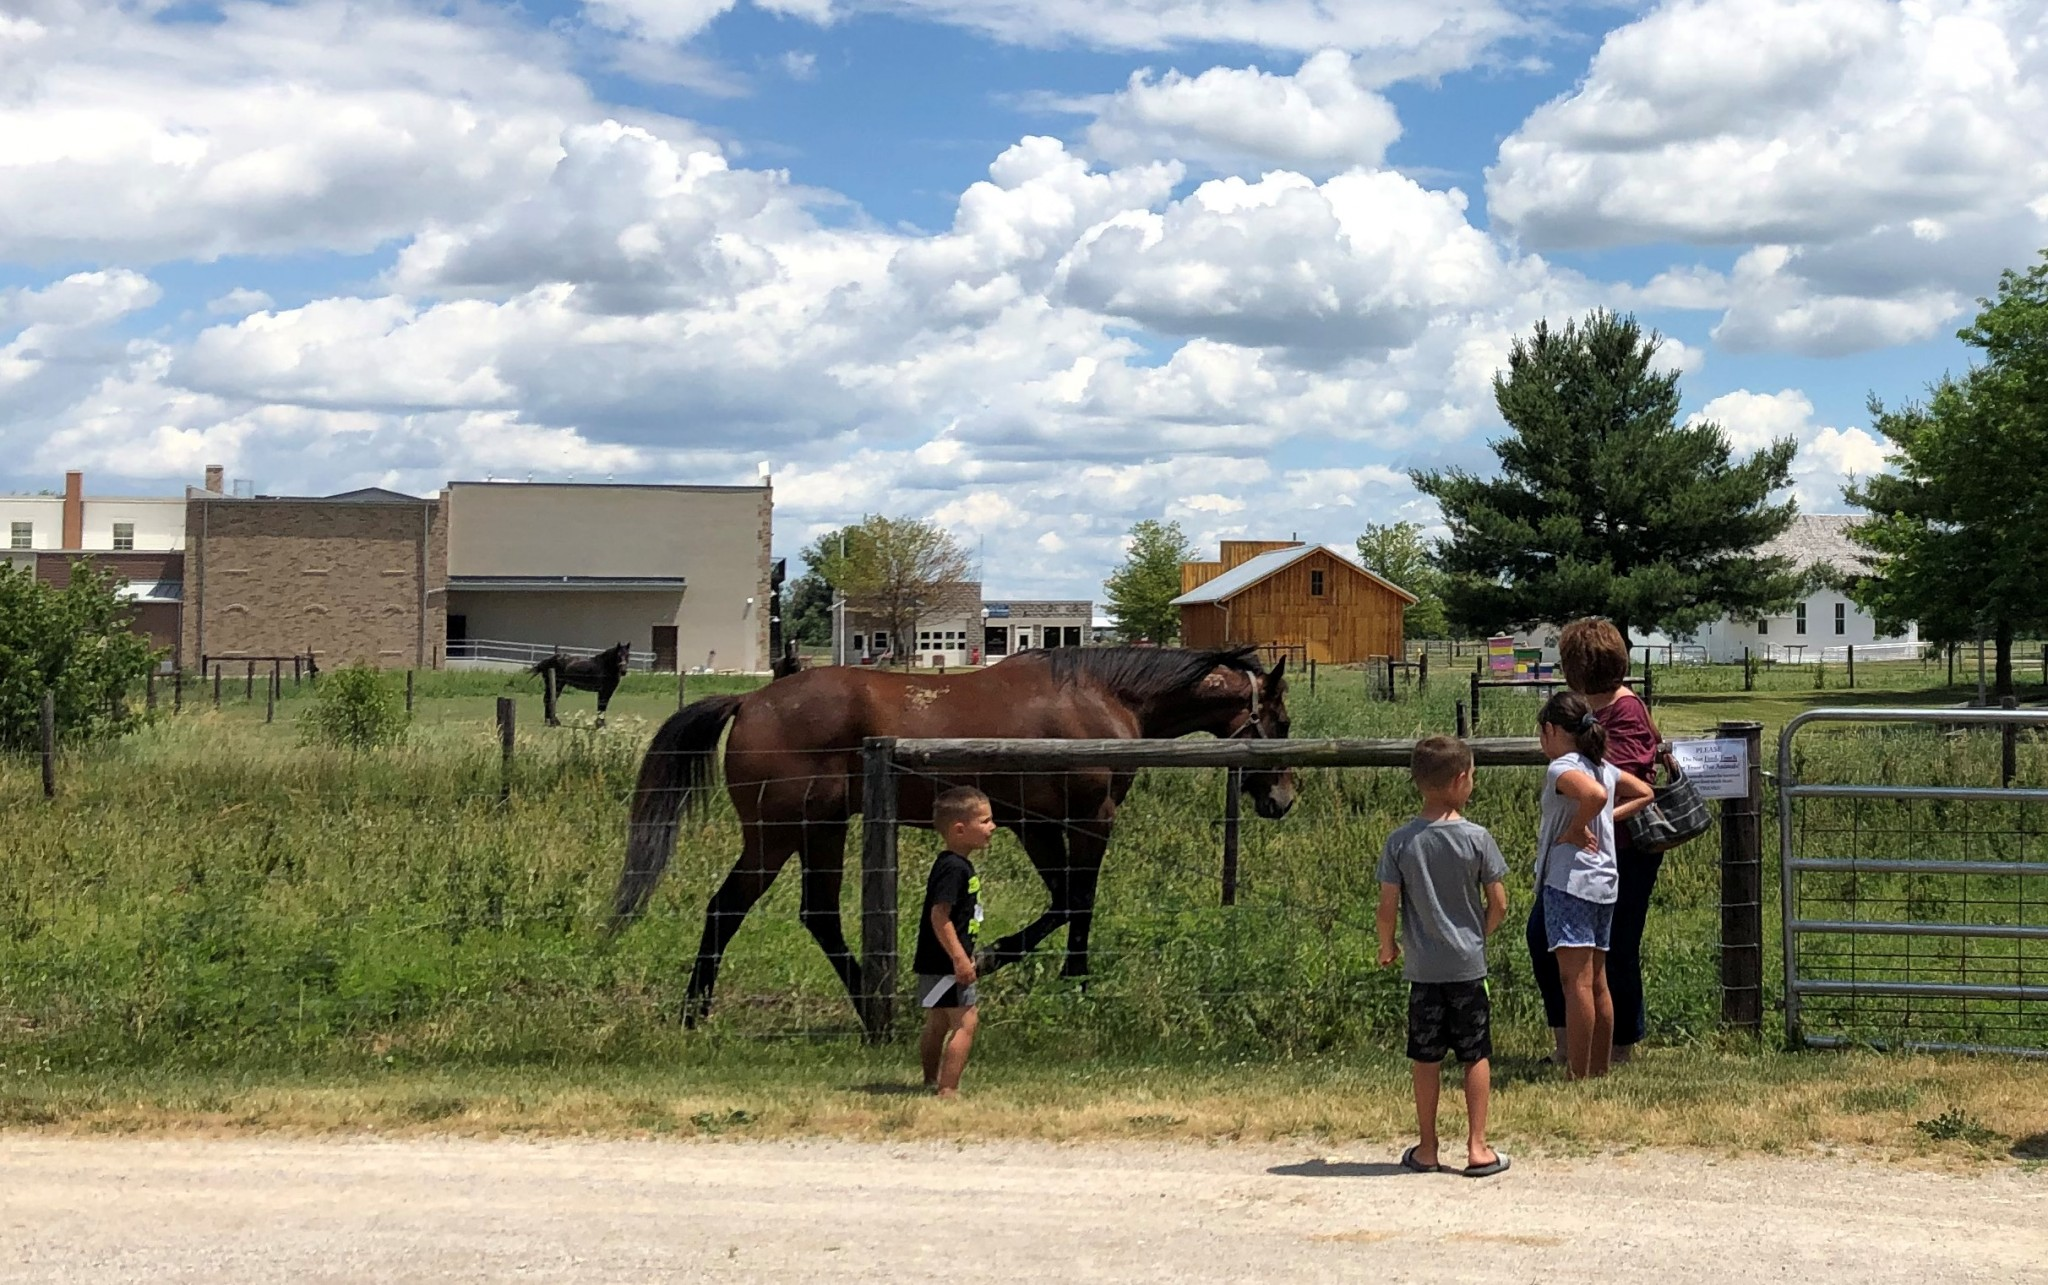 Sauder Village will celebrate Summer on the Farm, complete with stories, demonstrations and fun activities that bring Ohio's history to life, on Saturday July 11. (Photo courtesy of Sauder Village)